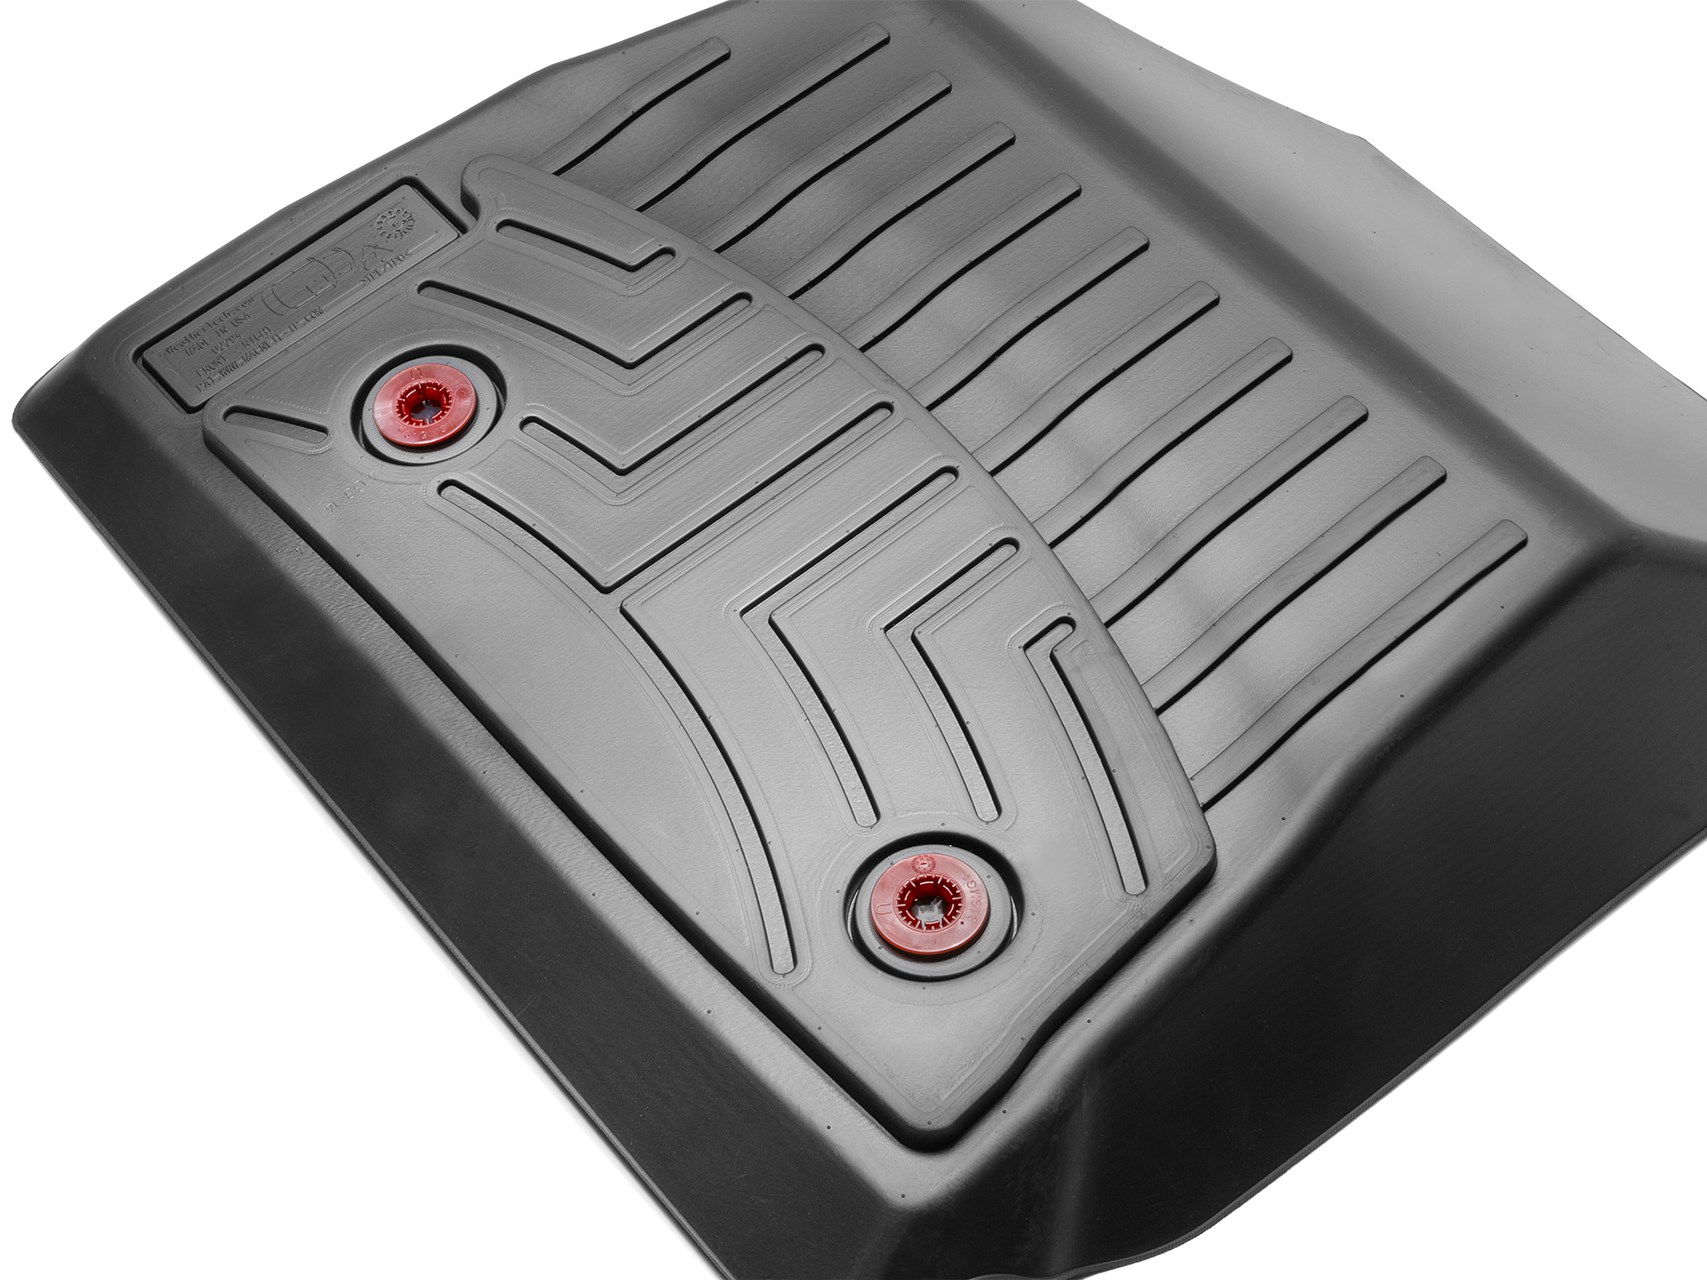 WeatherTech's floor liner: construction/retention system